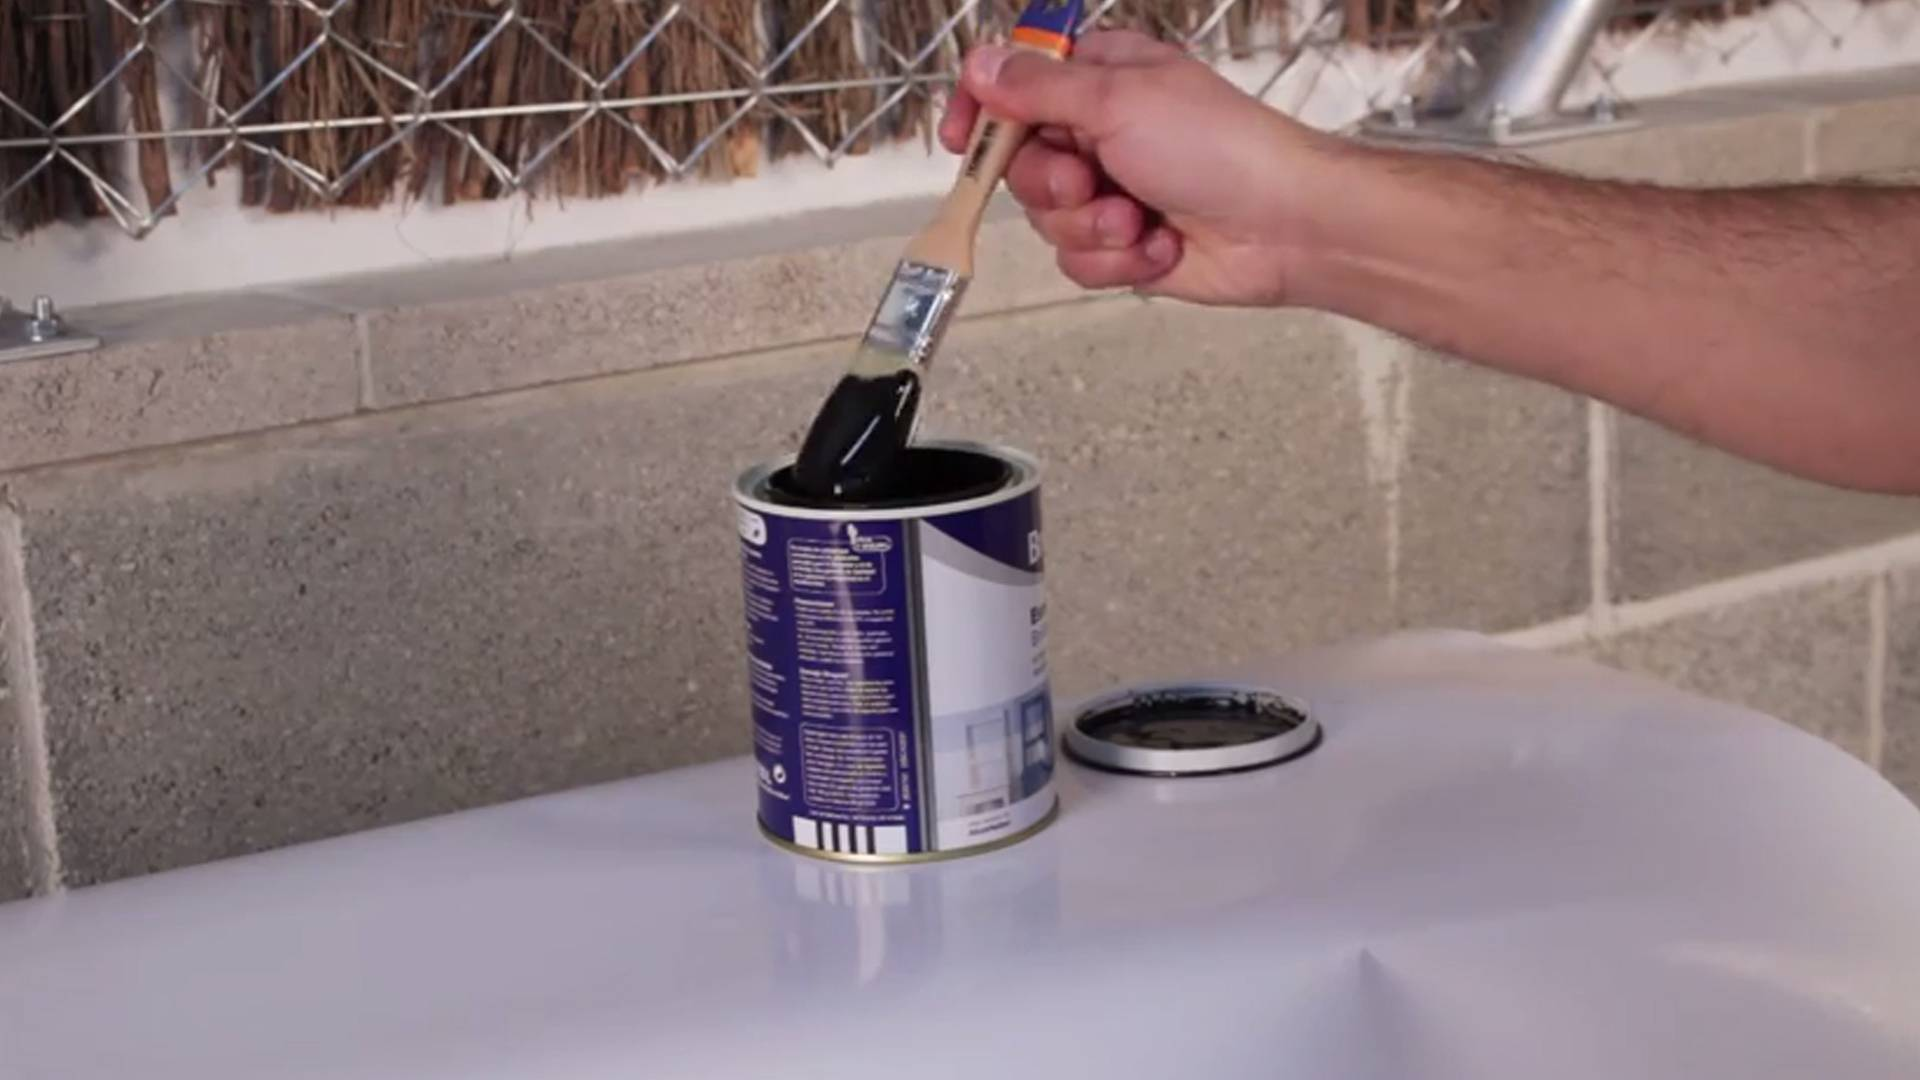 DIY Tips - How to avoid stain with a brush when dip into paint